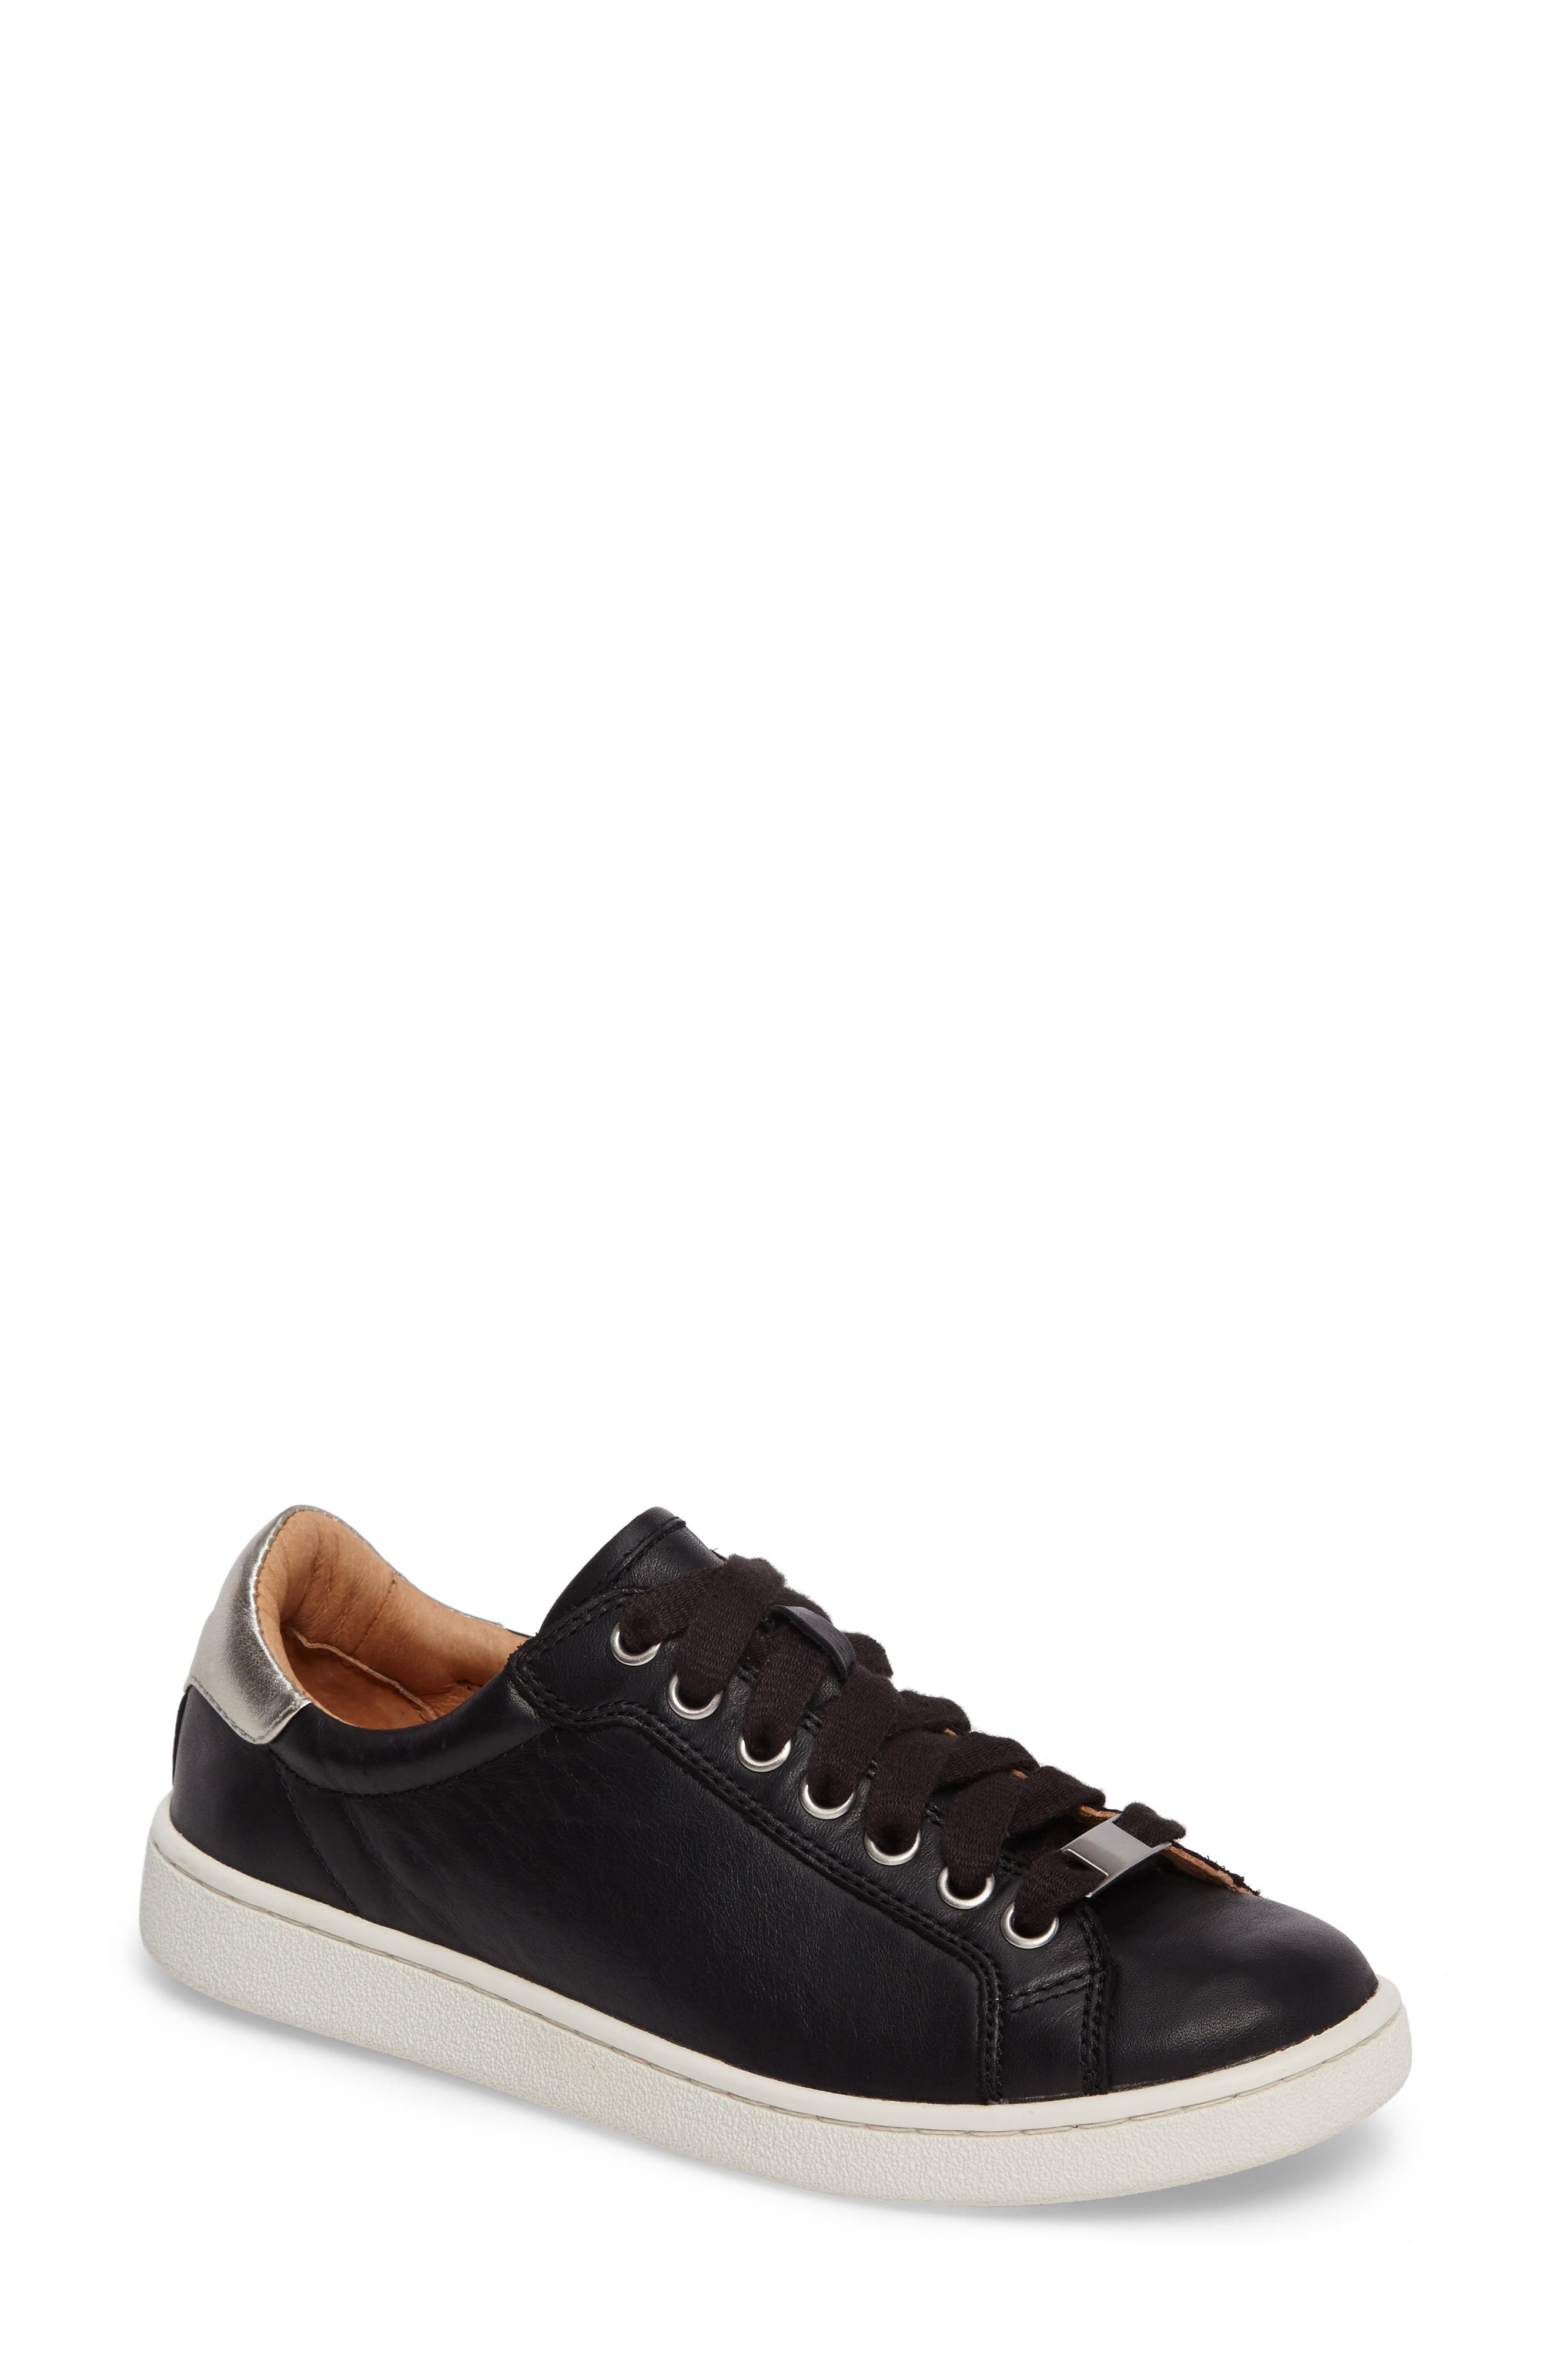 UGG<SUP>®</SUP> Milo Sneaker, Main, color, BLACK LEATHER